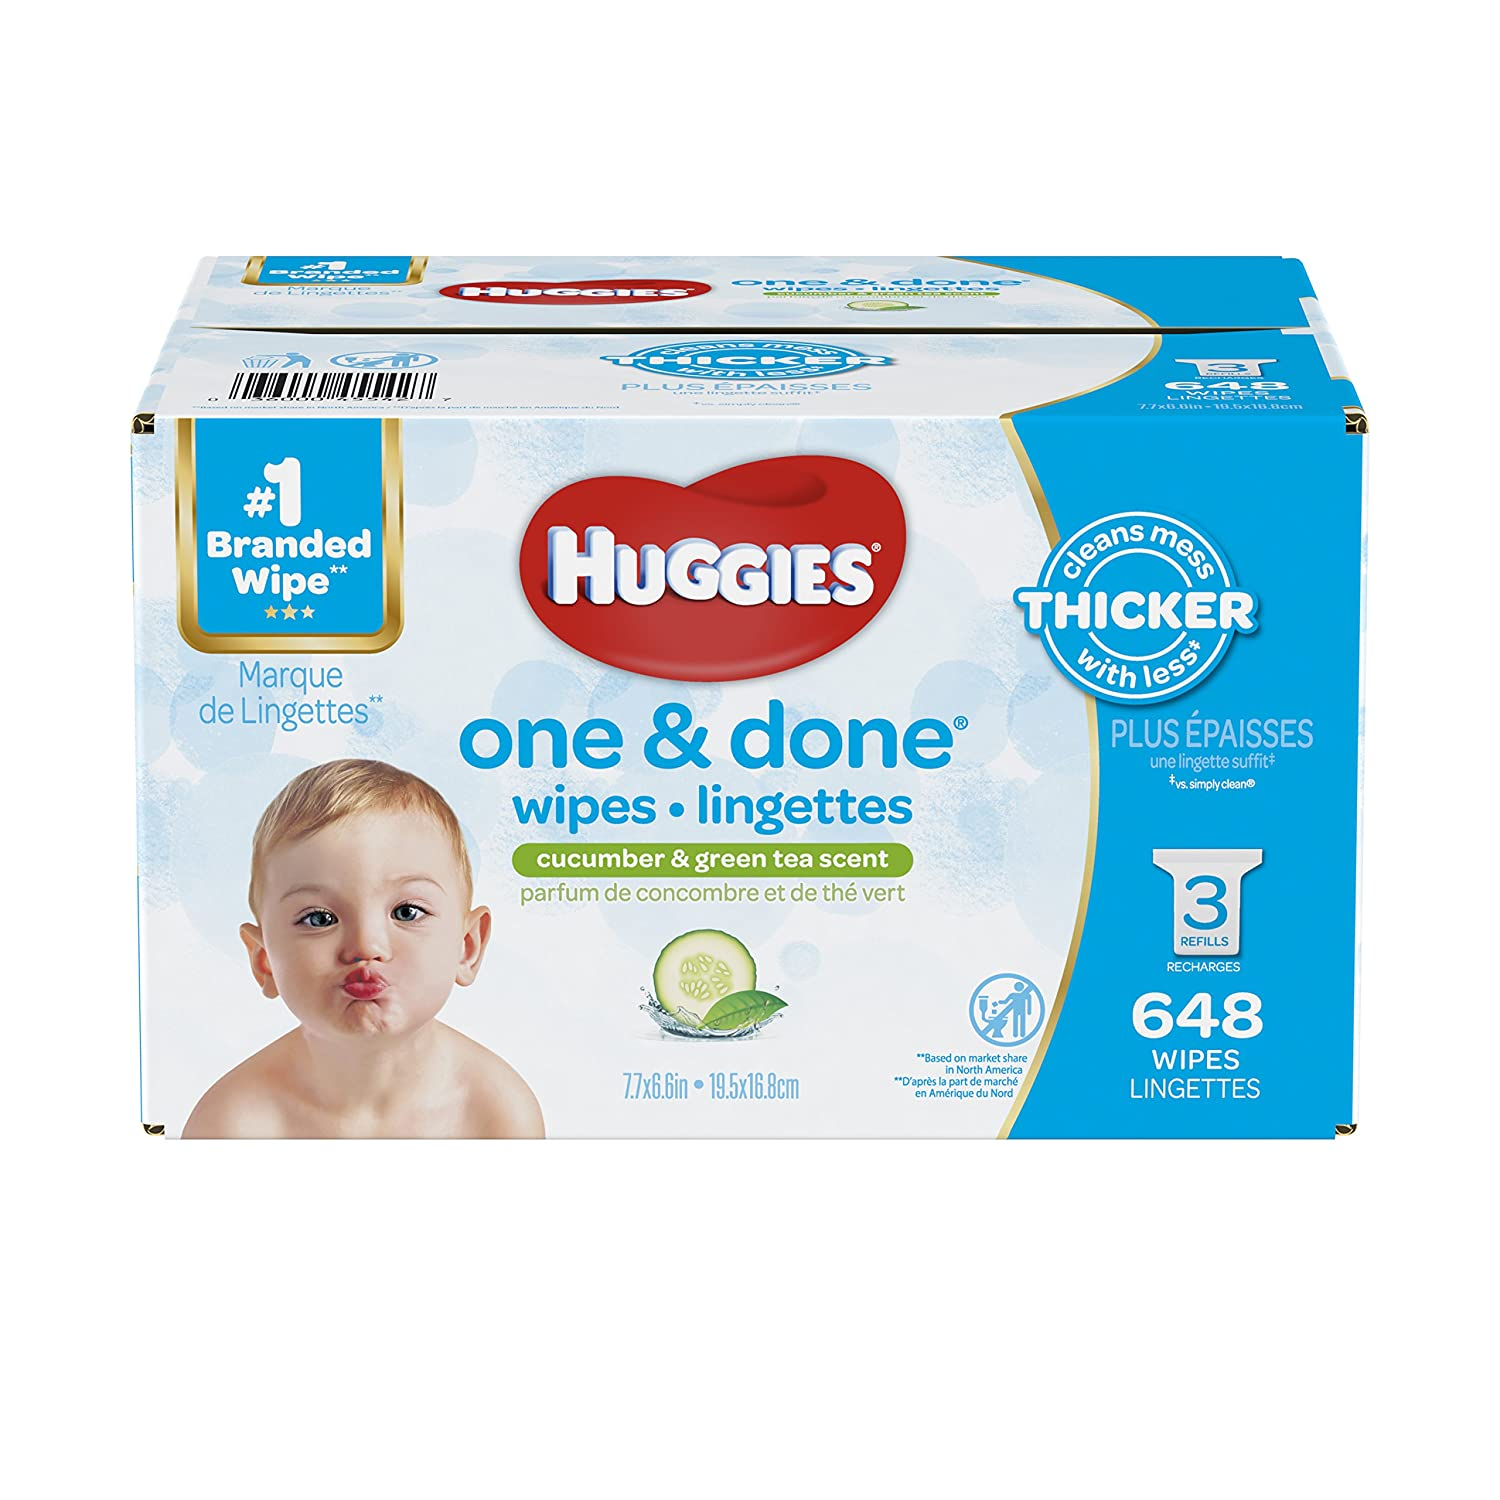 HUGGIES One & Done Refreshing Baby Wipes, Refill, 648 Count Kimberly-Clark 45542